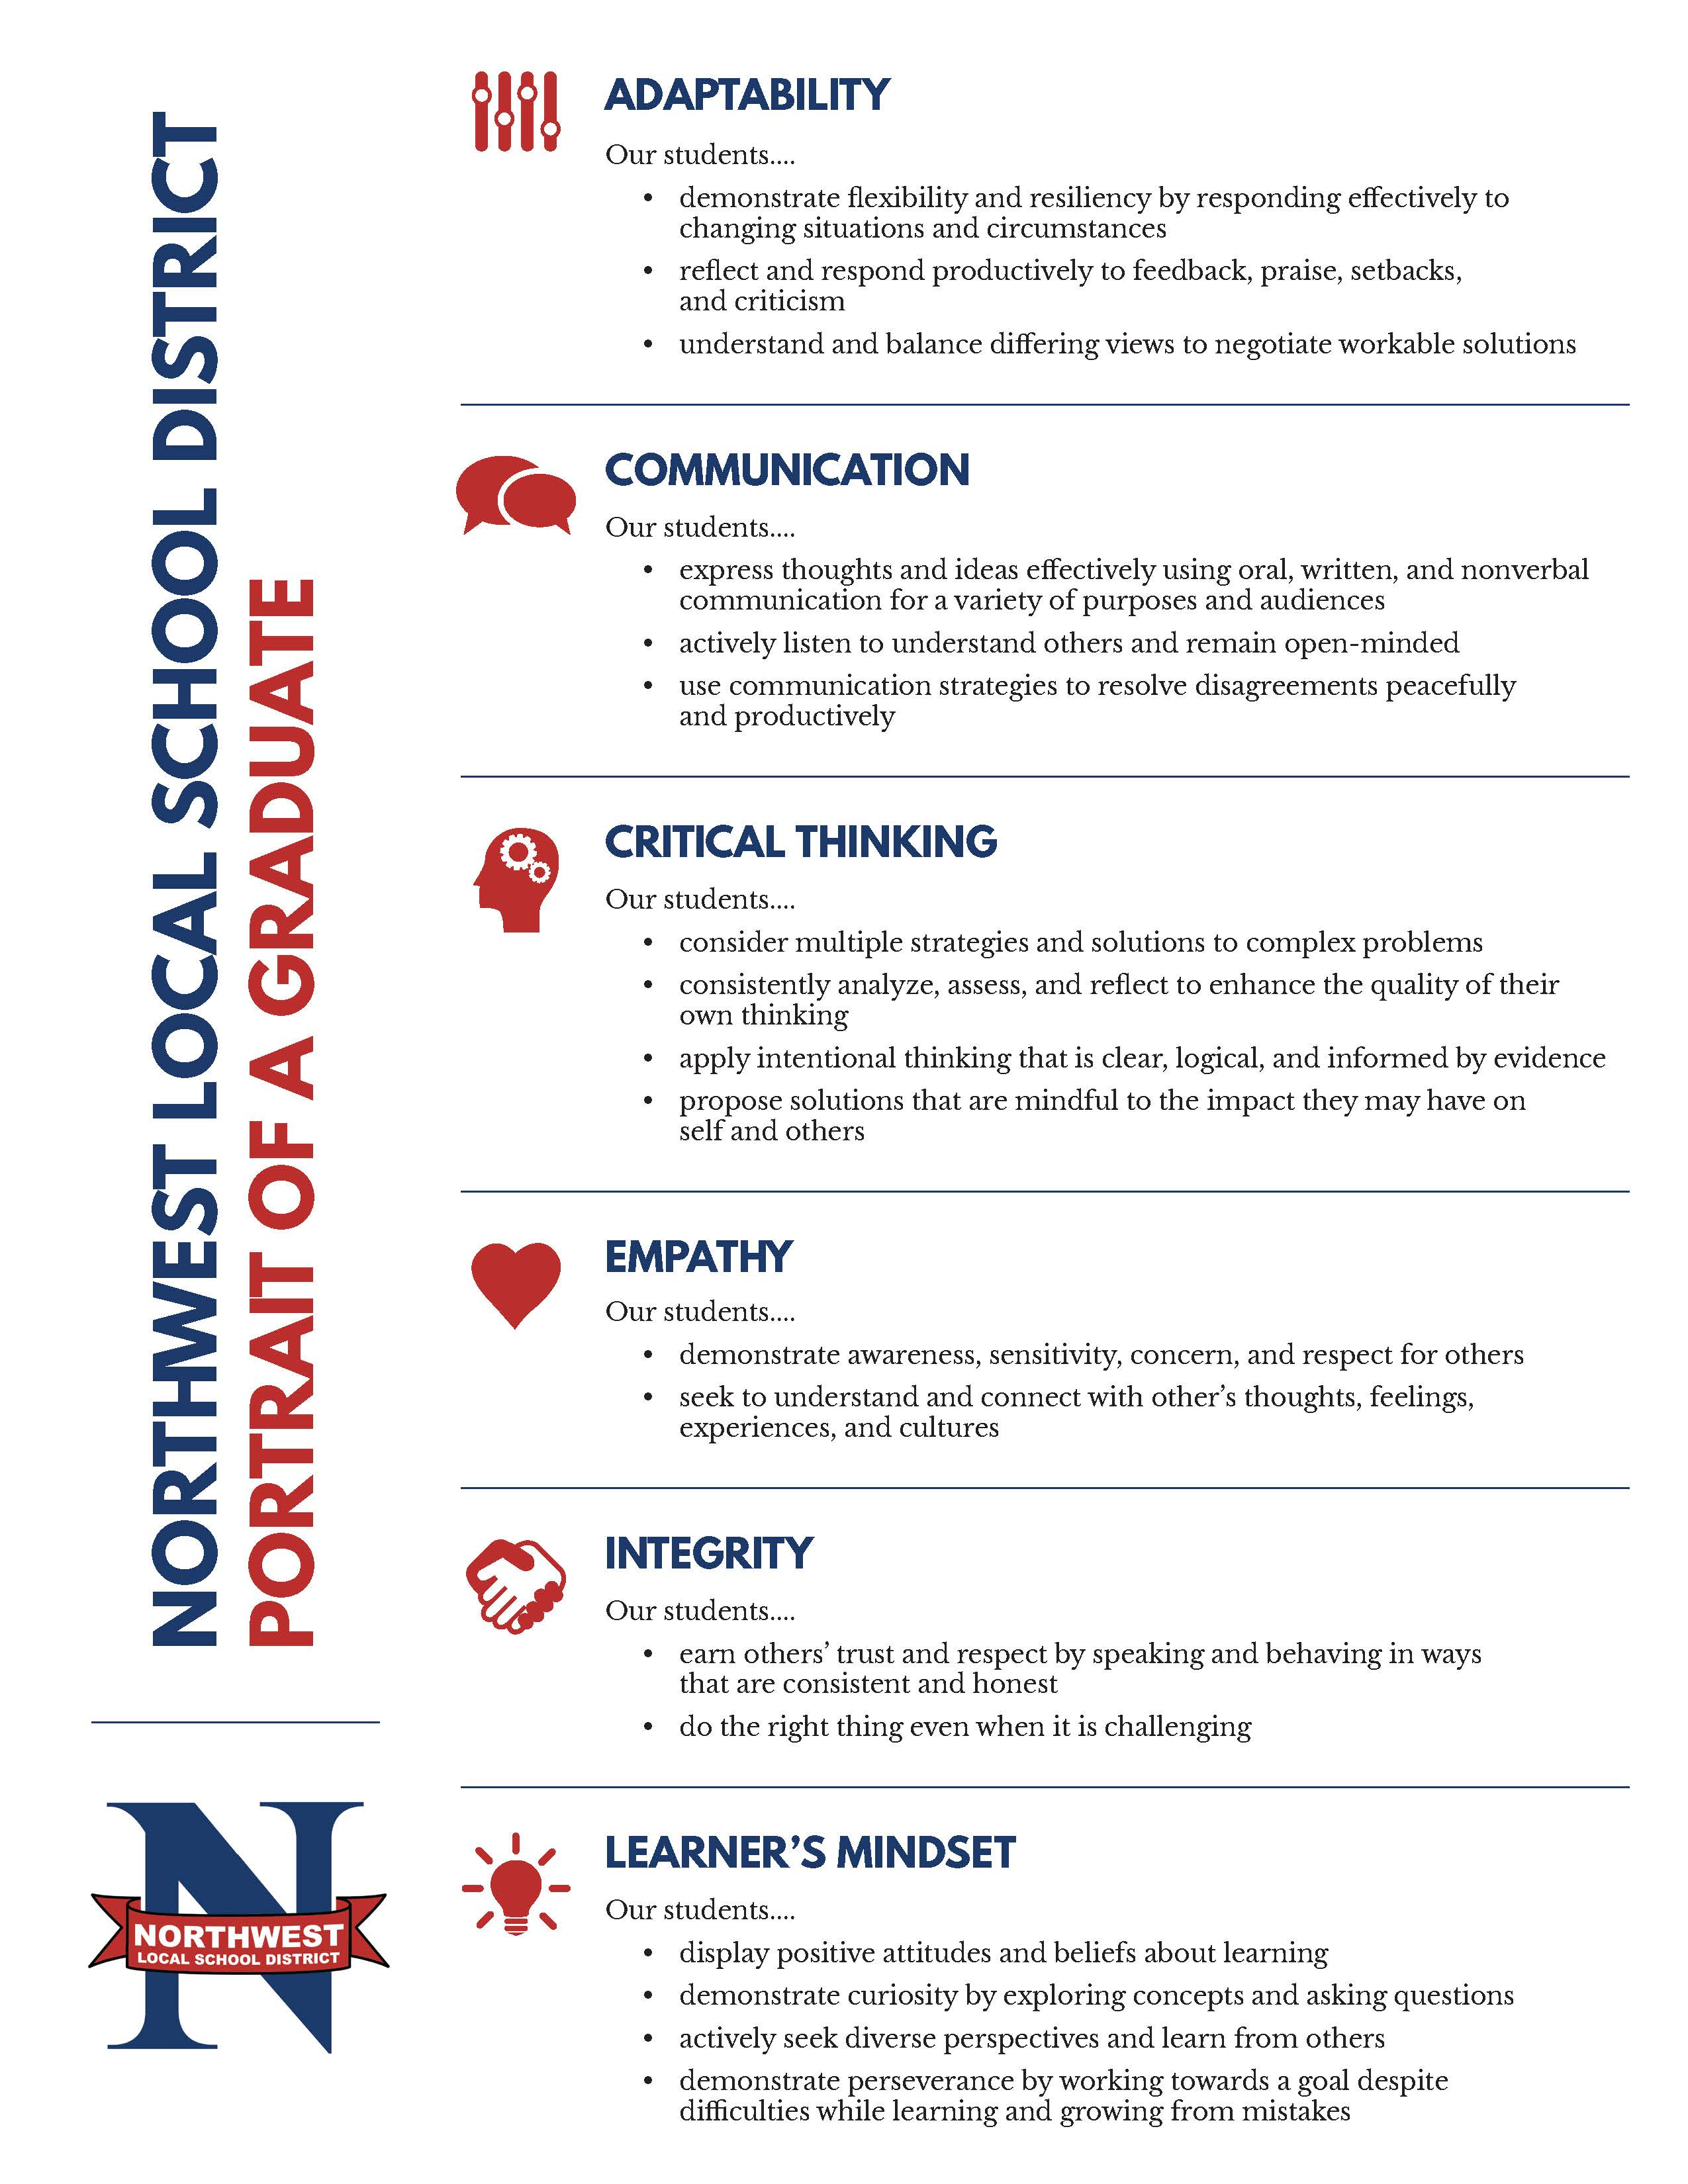 Northwest Local Schoo District Portrait of a Graduate Competencies and their definitions